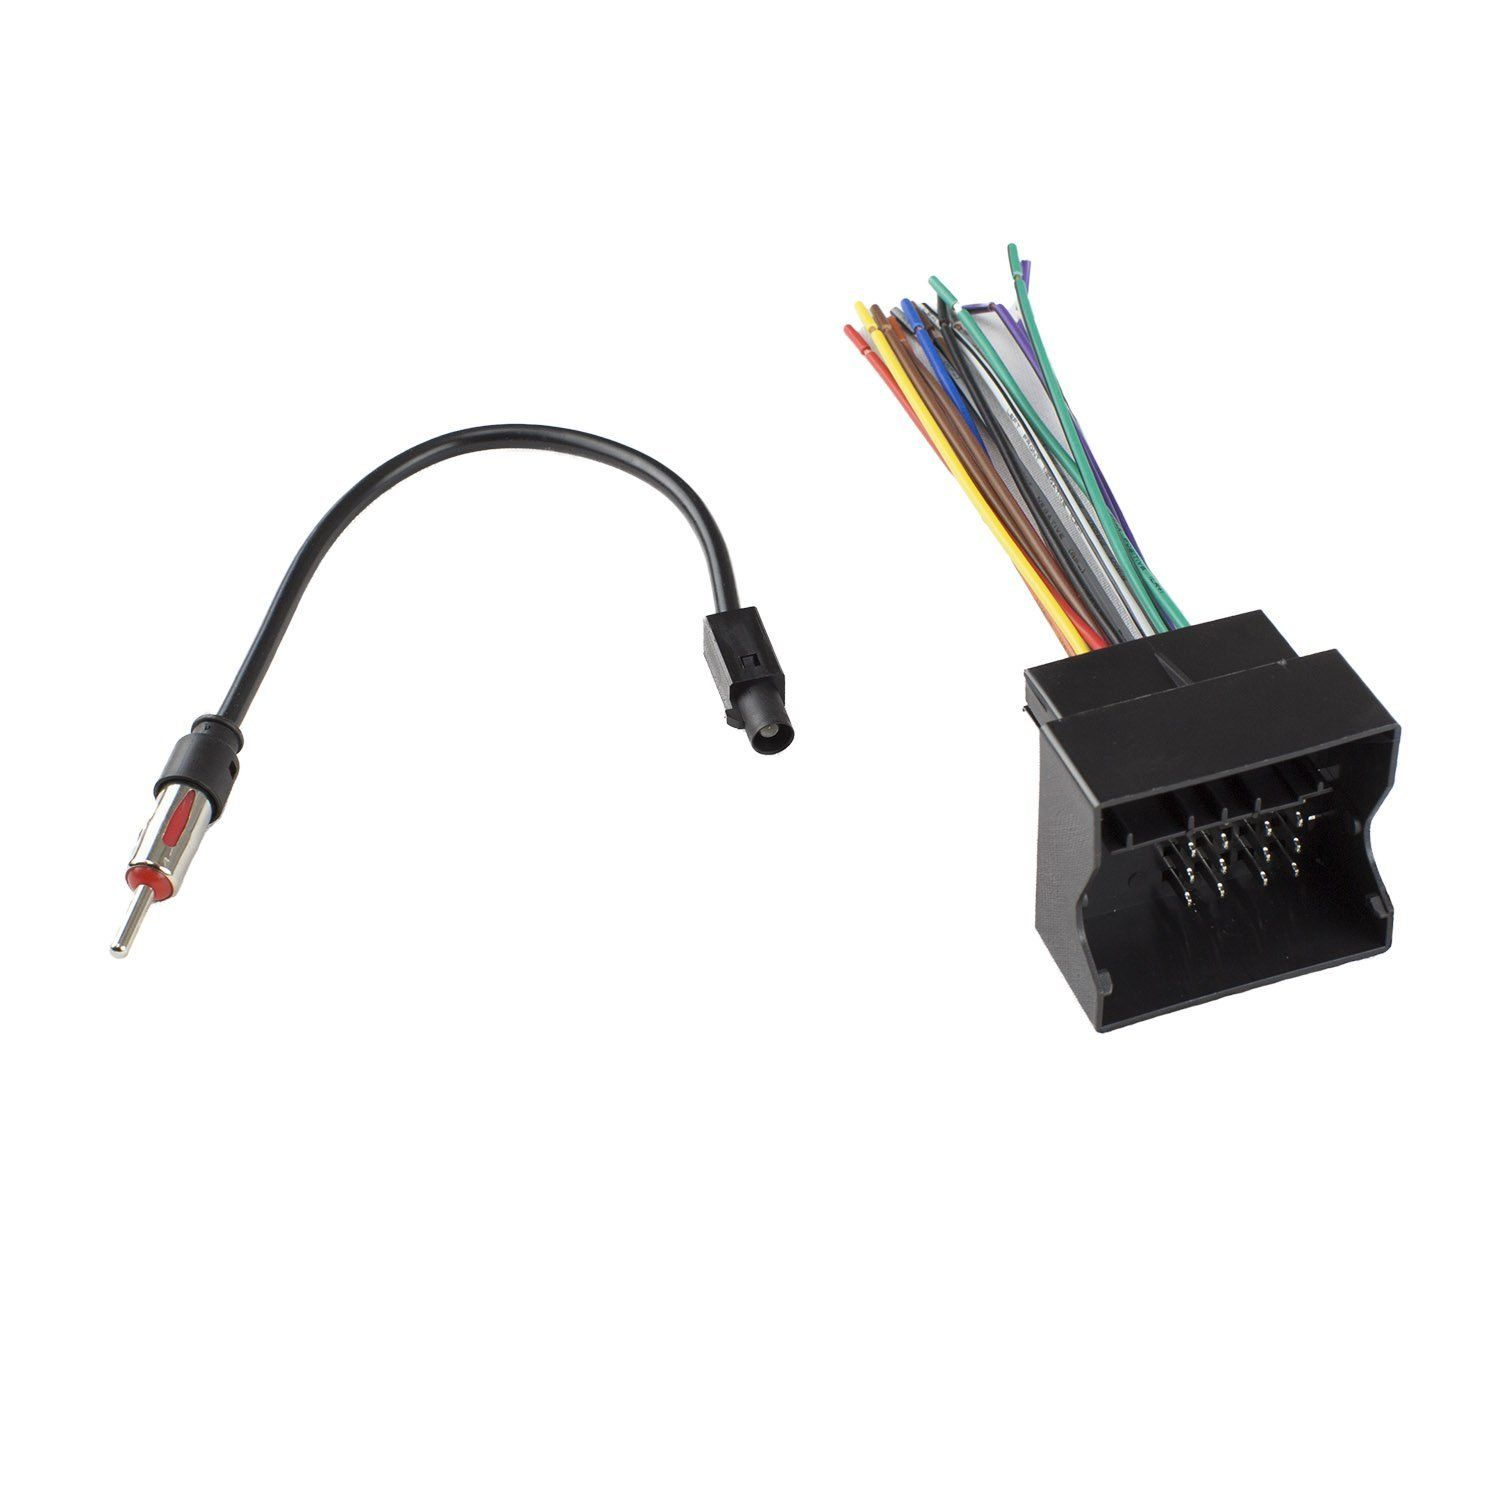 small resolution of novosonics vwf 1010 vw7 wiring harness for mini cooper package includes vwf 1010 wire harness vw 7 radio antenna adapter connect an aftermarket stereo to